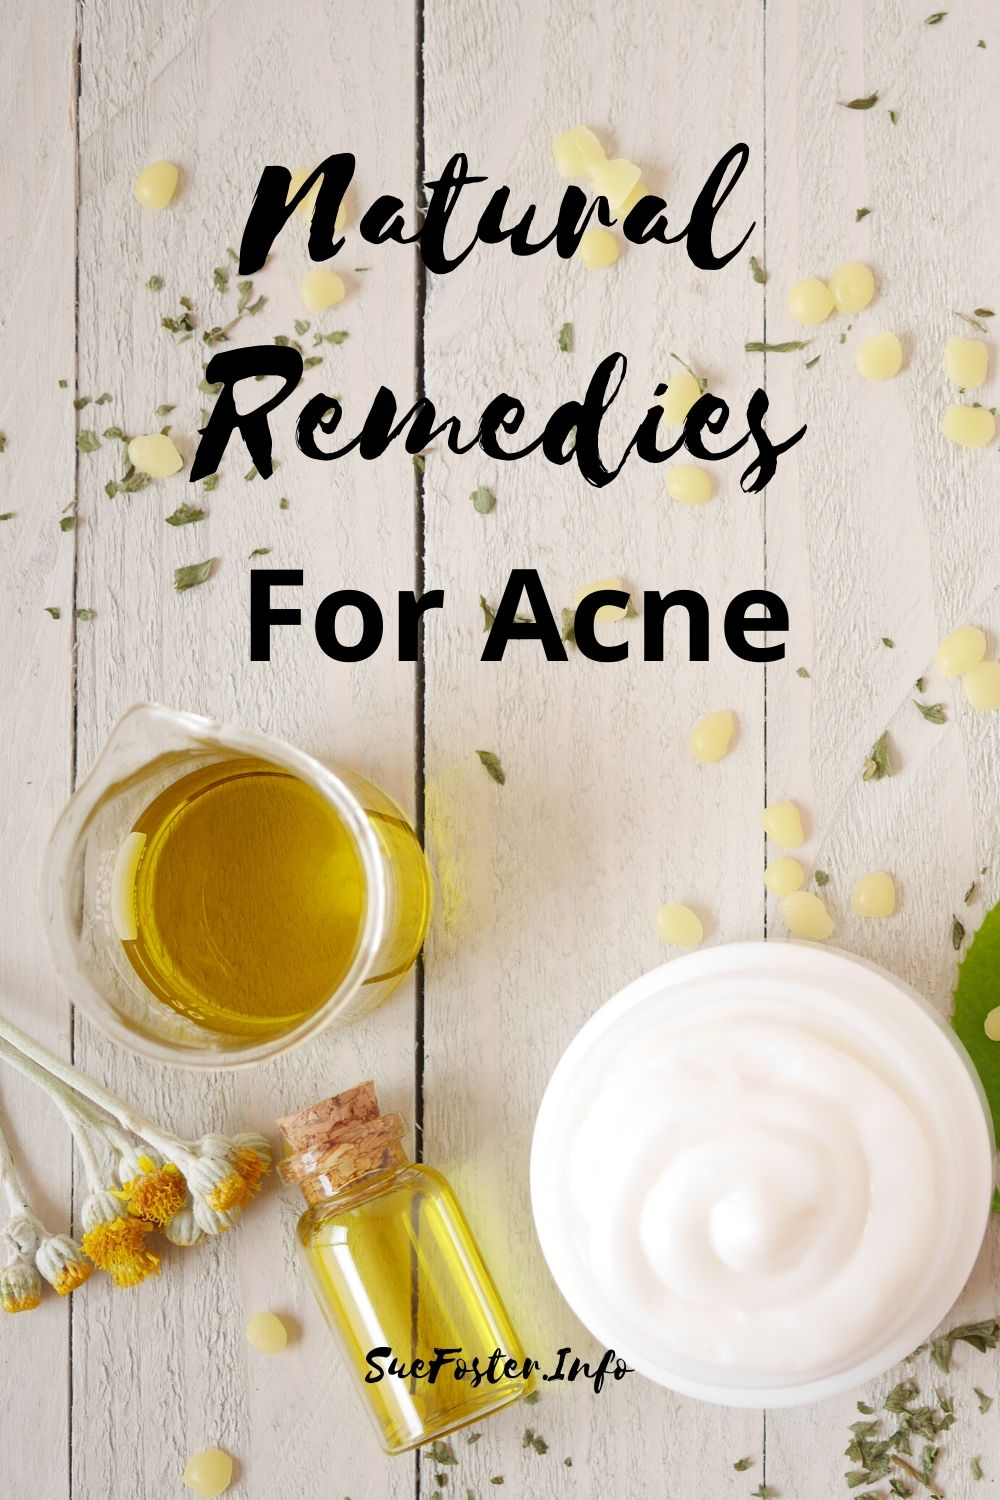 Natural remedies for acne.